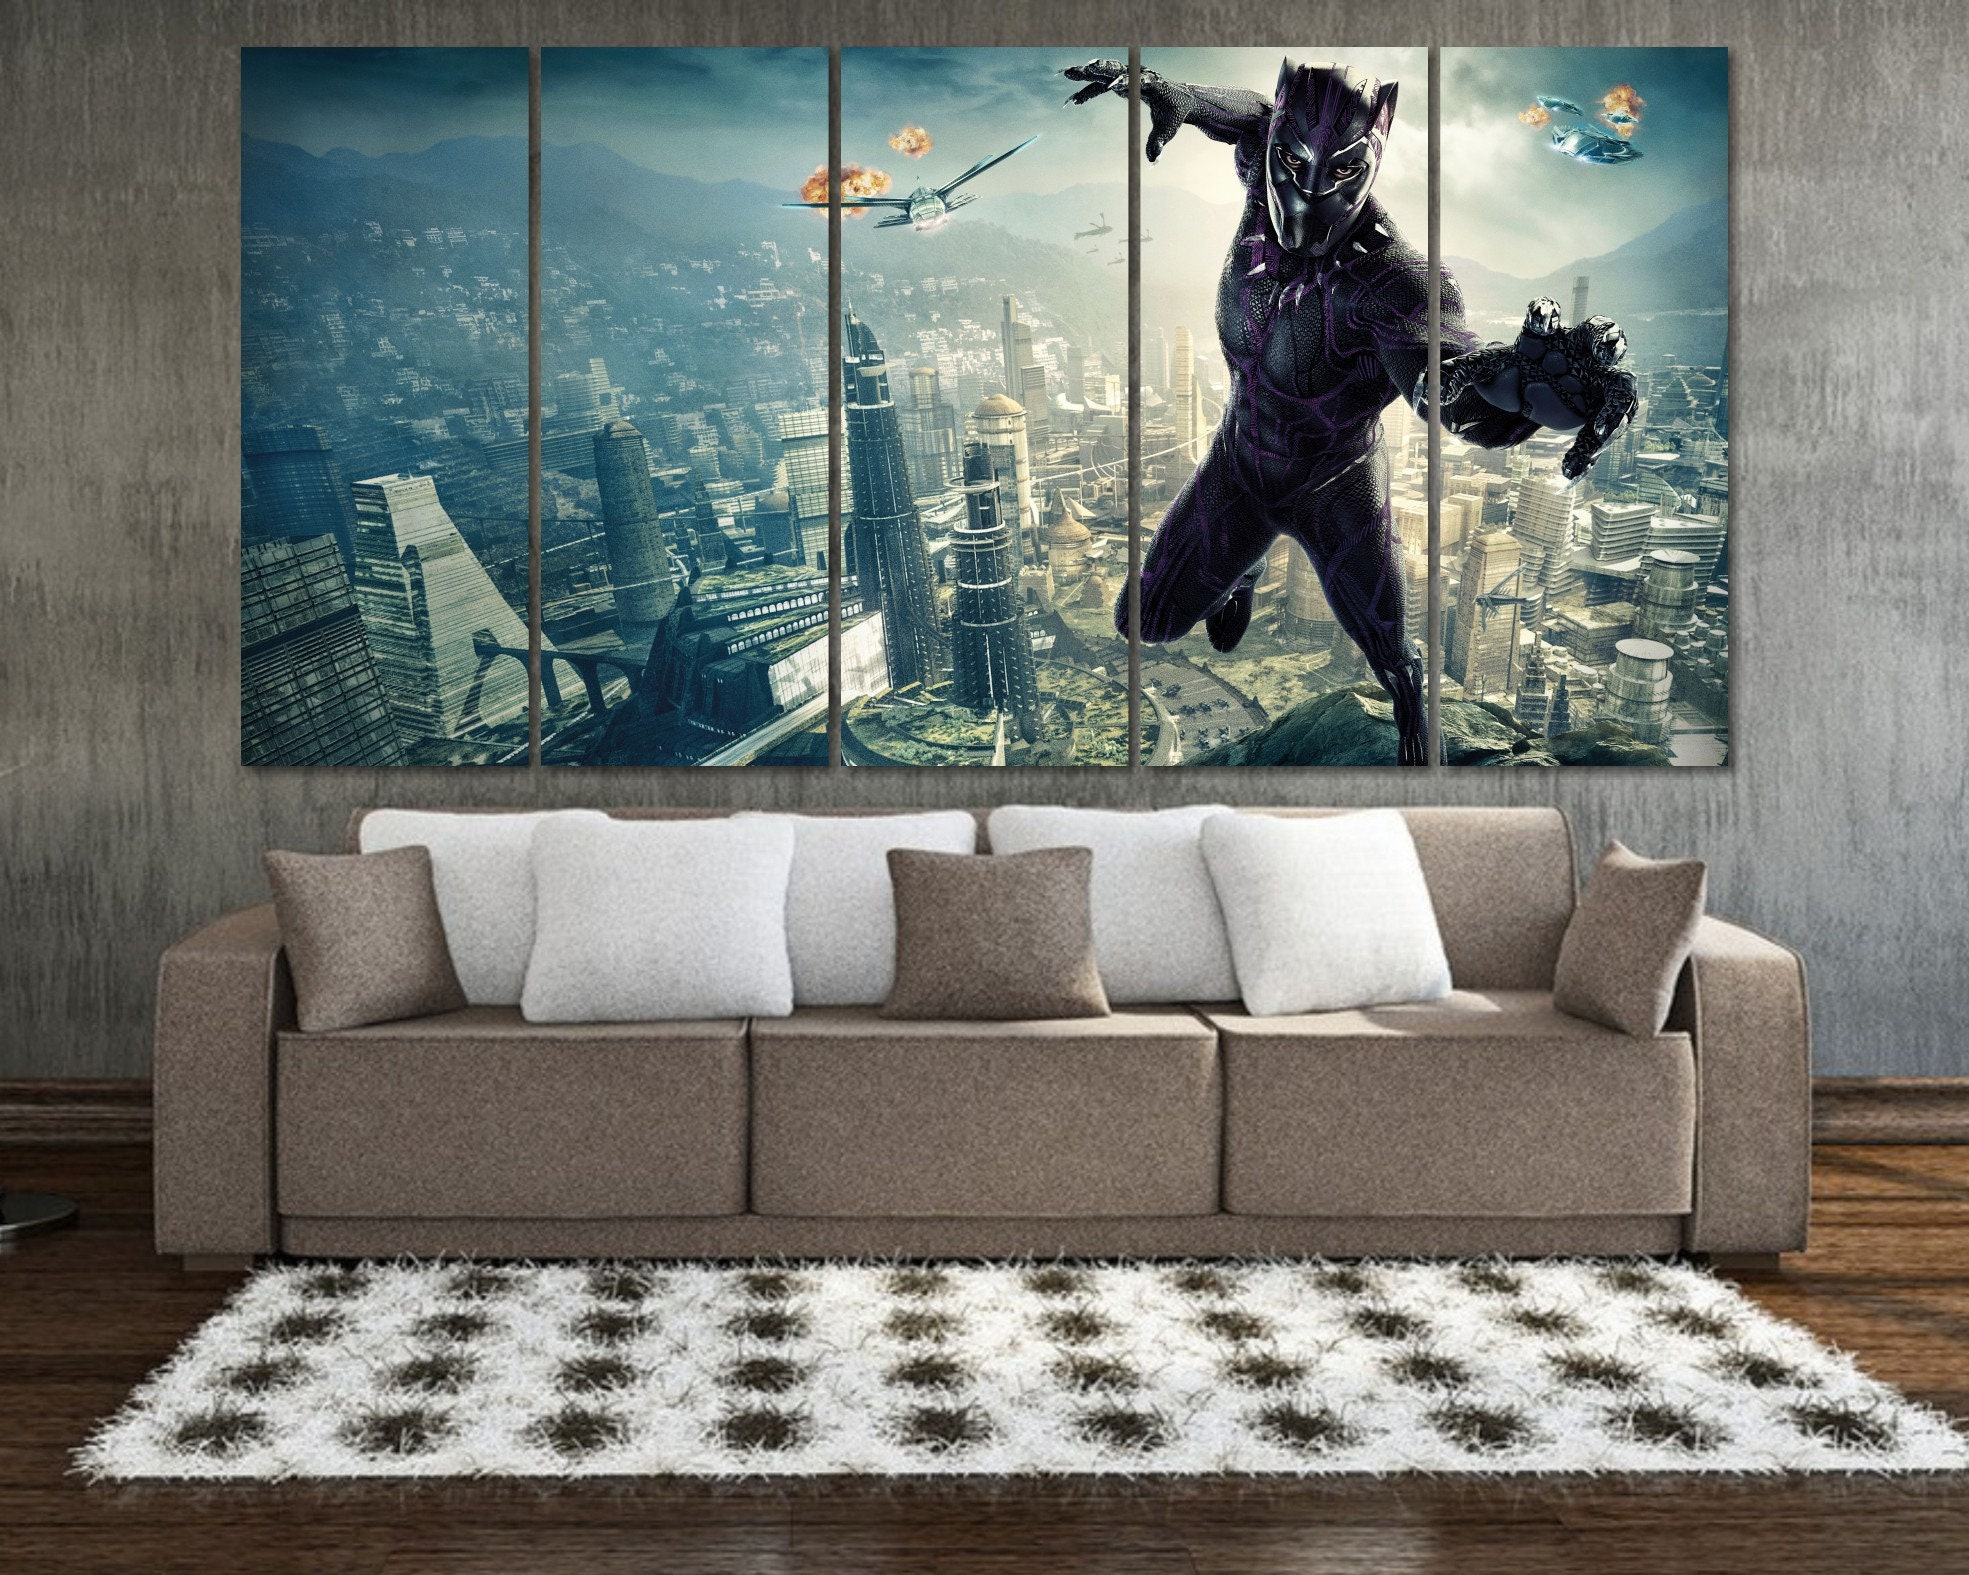 Black panther wall art black panther poster black panther art black panther marvel marvel wall art avengers poster marvel comics art